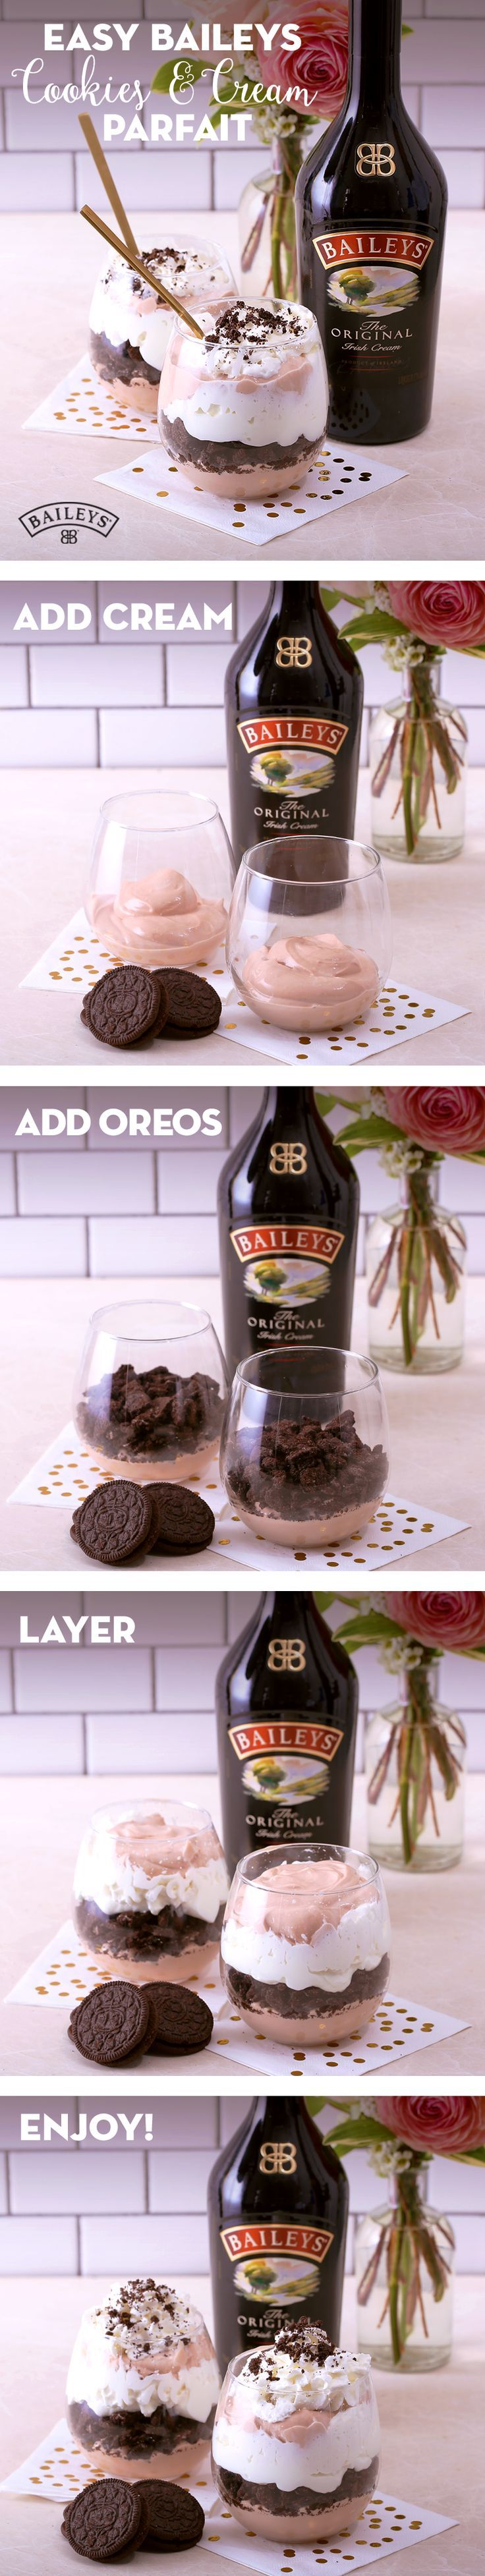 You need this simple and easy Baileys Cookies & Cream parfait in your party planning playbook. The combination of crunchy cookie crumbles, silky whipped cream, and a kick of flavor from Baileys makes for an irresistible weekend brunch treat. Just mix 1oz of Baileys™ Original Irish Cream into whipped cream and layer the whipped cream mixture and cookie crumbles in alternating layers. It's the perfect chilled dessert for a summer BBQ, Memorial Day celebration or a night in with your girls!